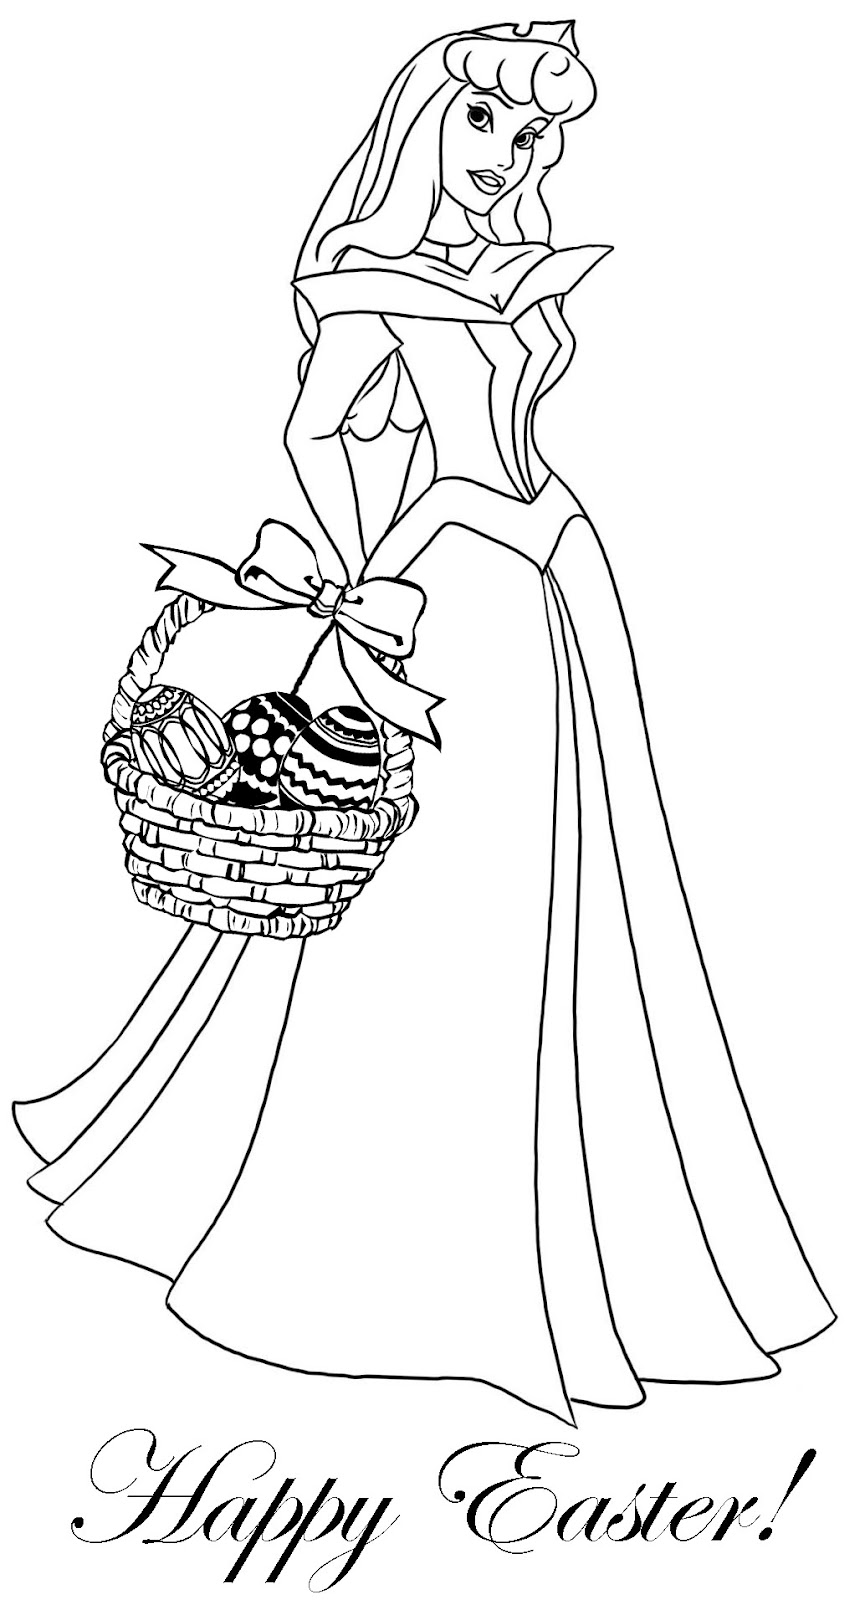 coloring princesses disney princesses best coloring pages minister coloring princesses coloring